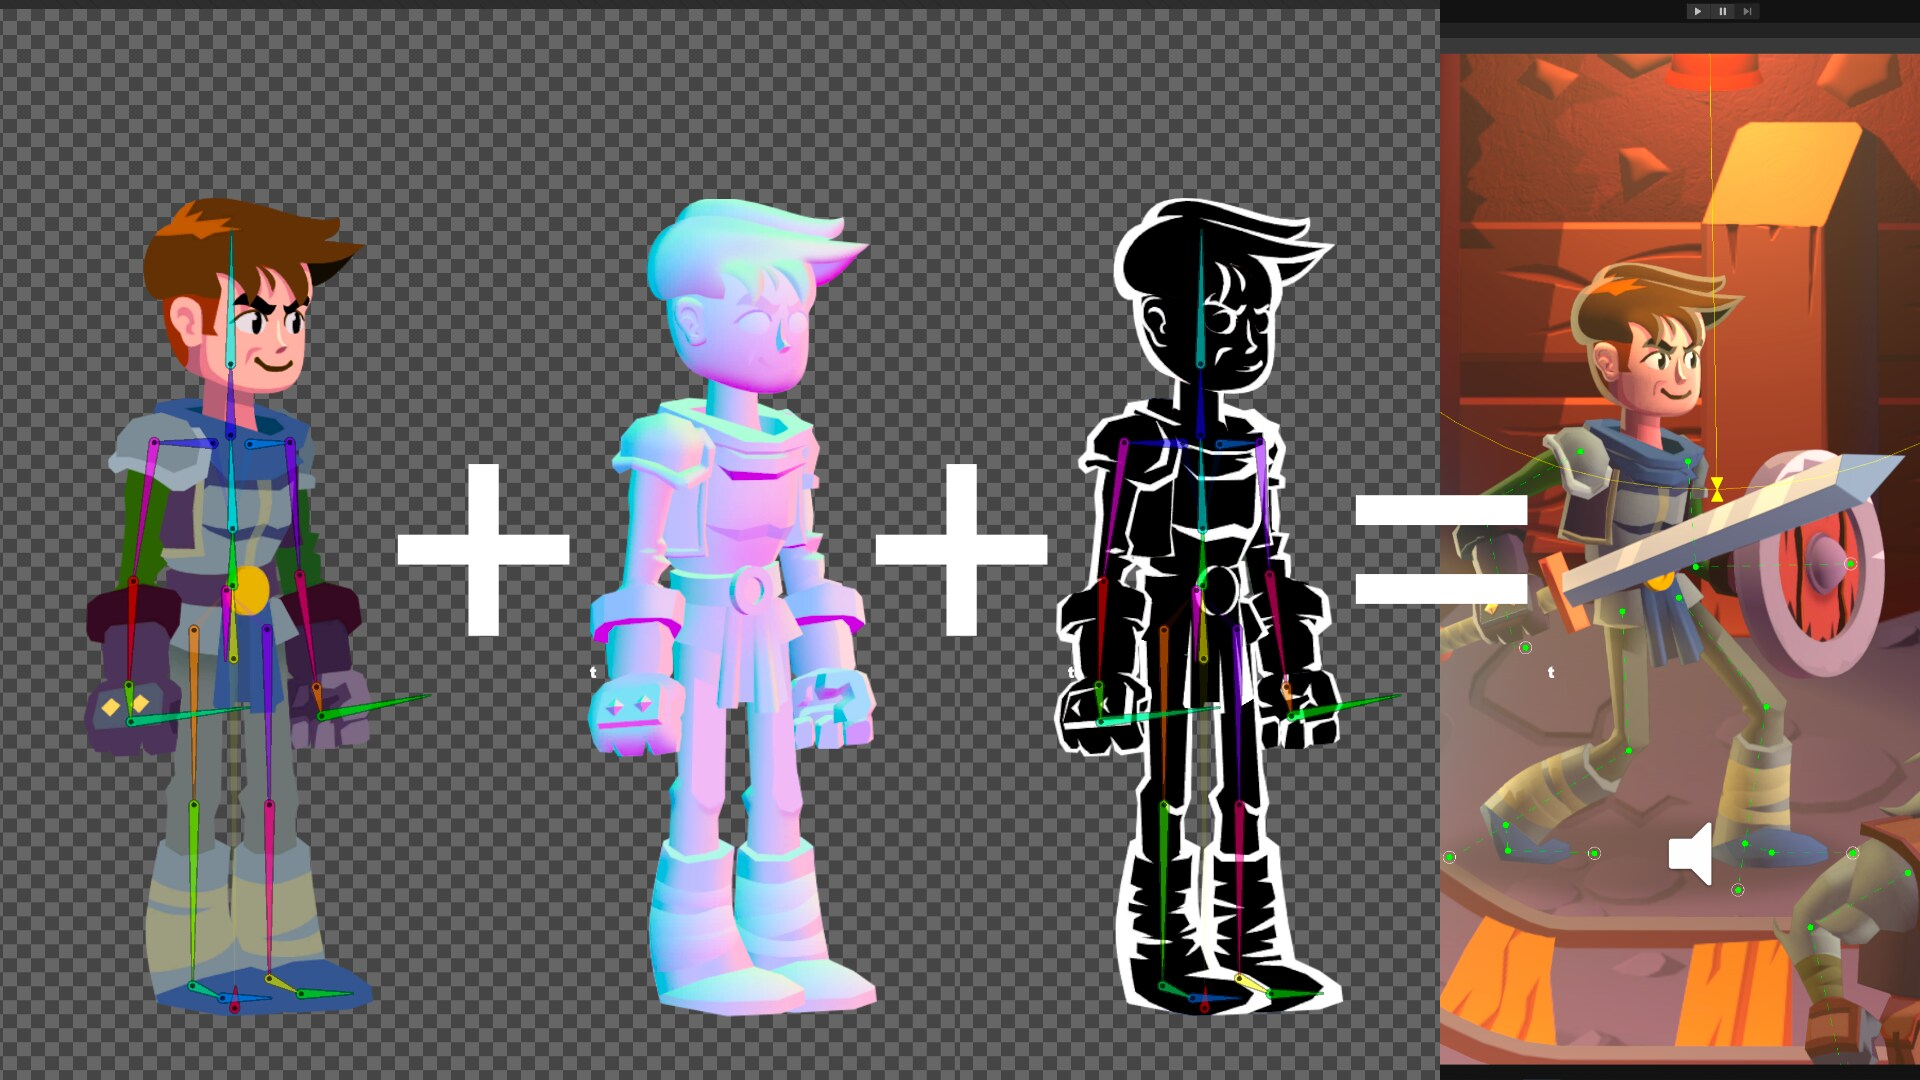 Image showing the process from basic character model to fully working character.